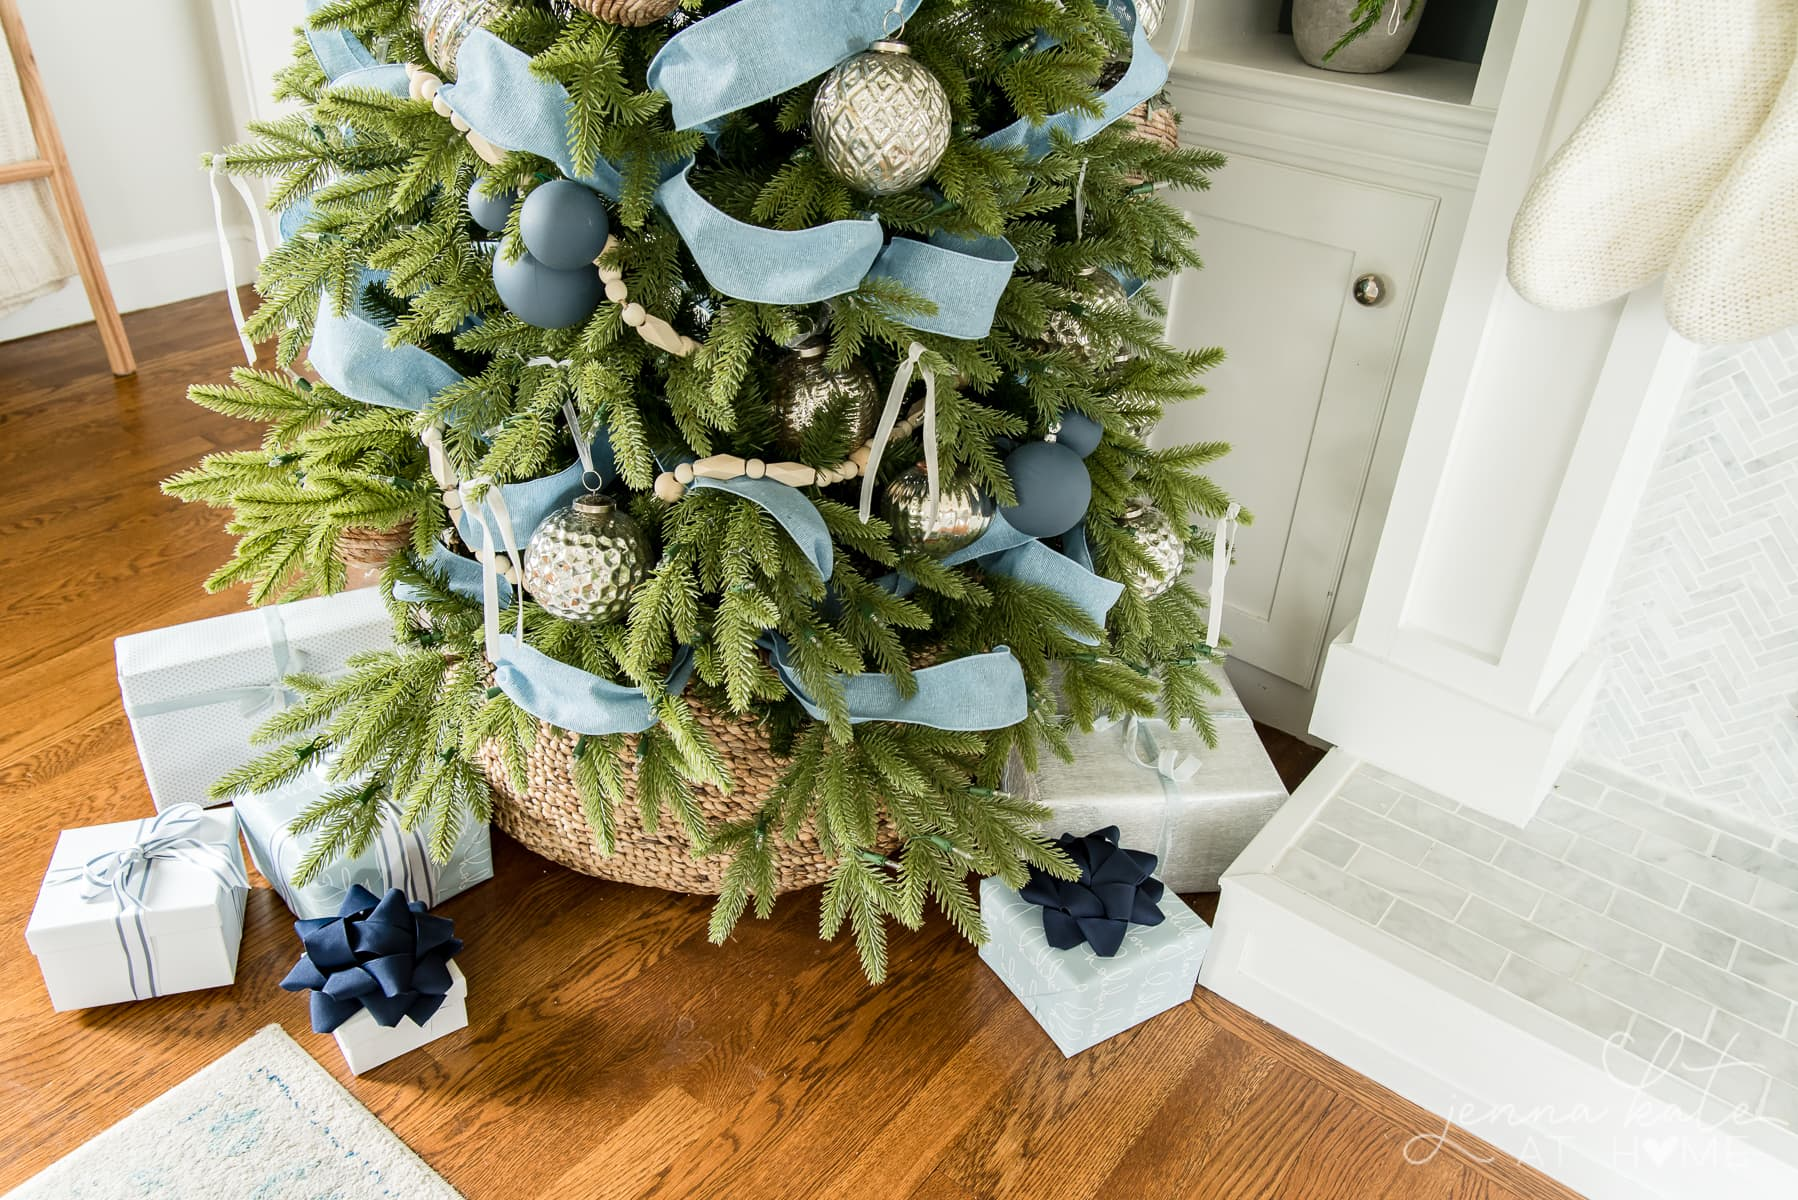 Presents wrapped under the Christmas tree with blue bows